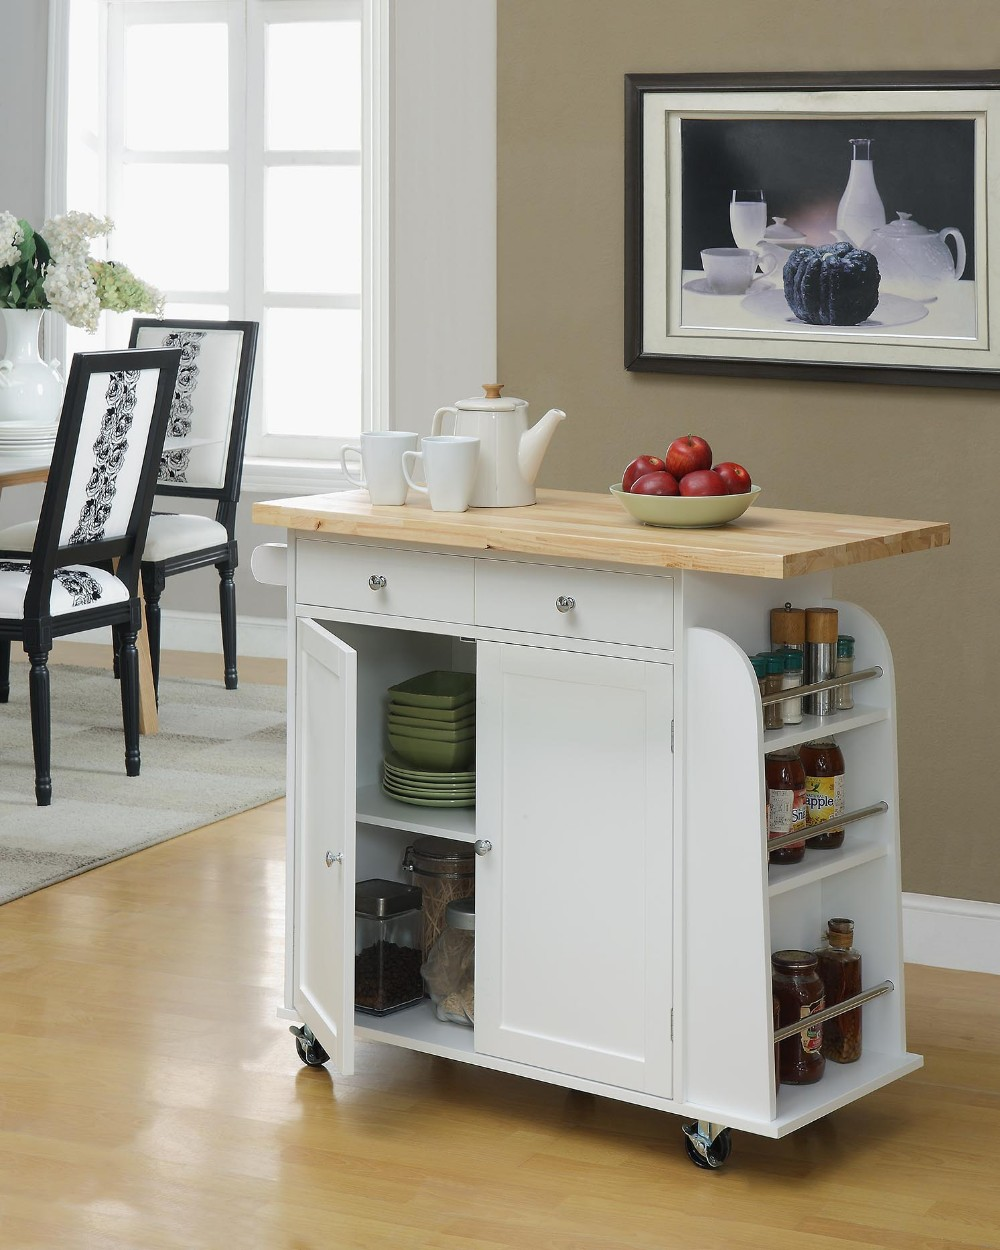 Portable Rolling Wooden Kitchen Trolley Cart Design Countertop Dining Storage Drawers 3 Drawer